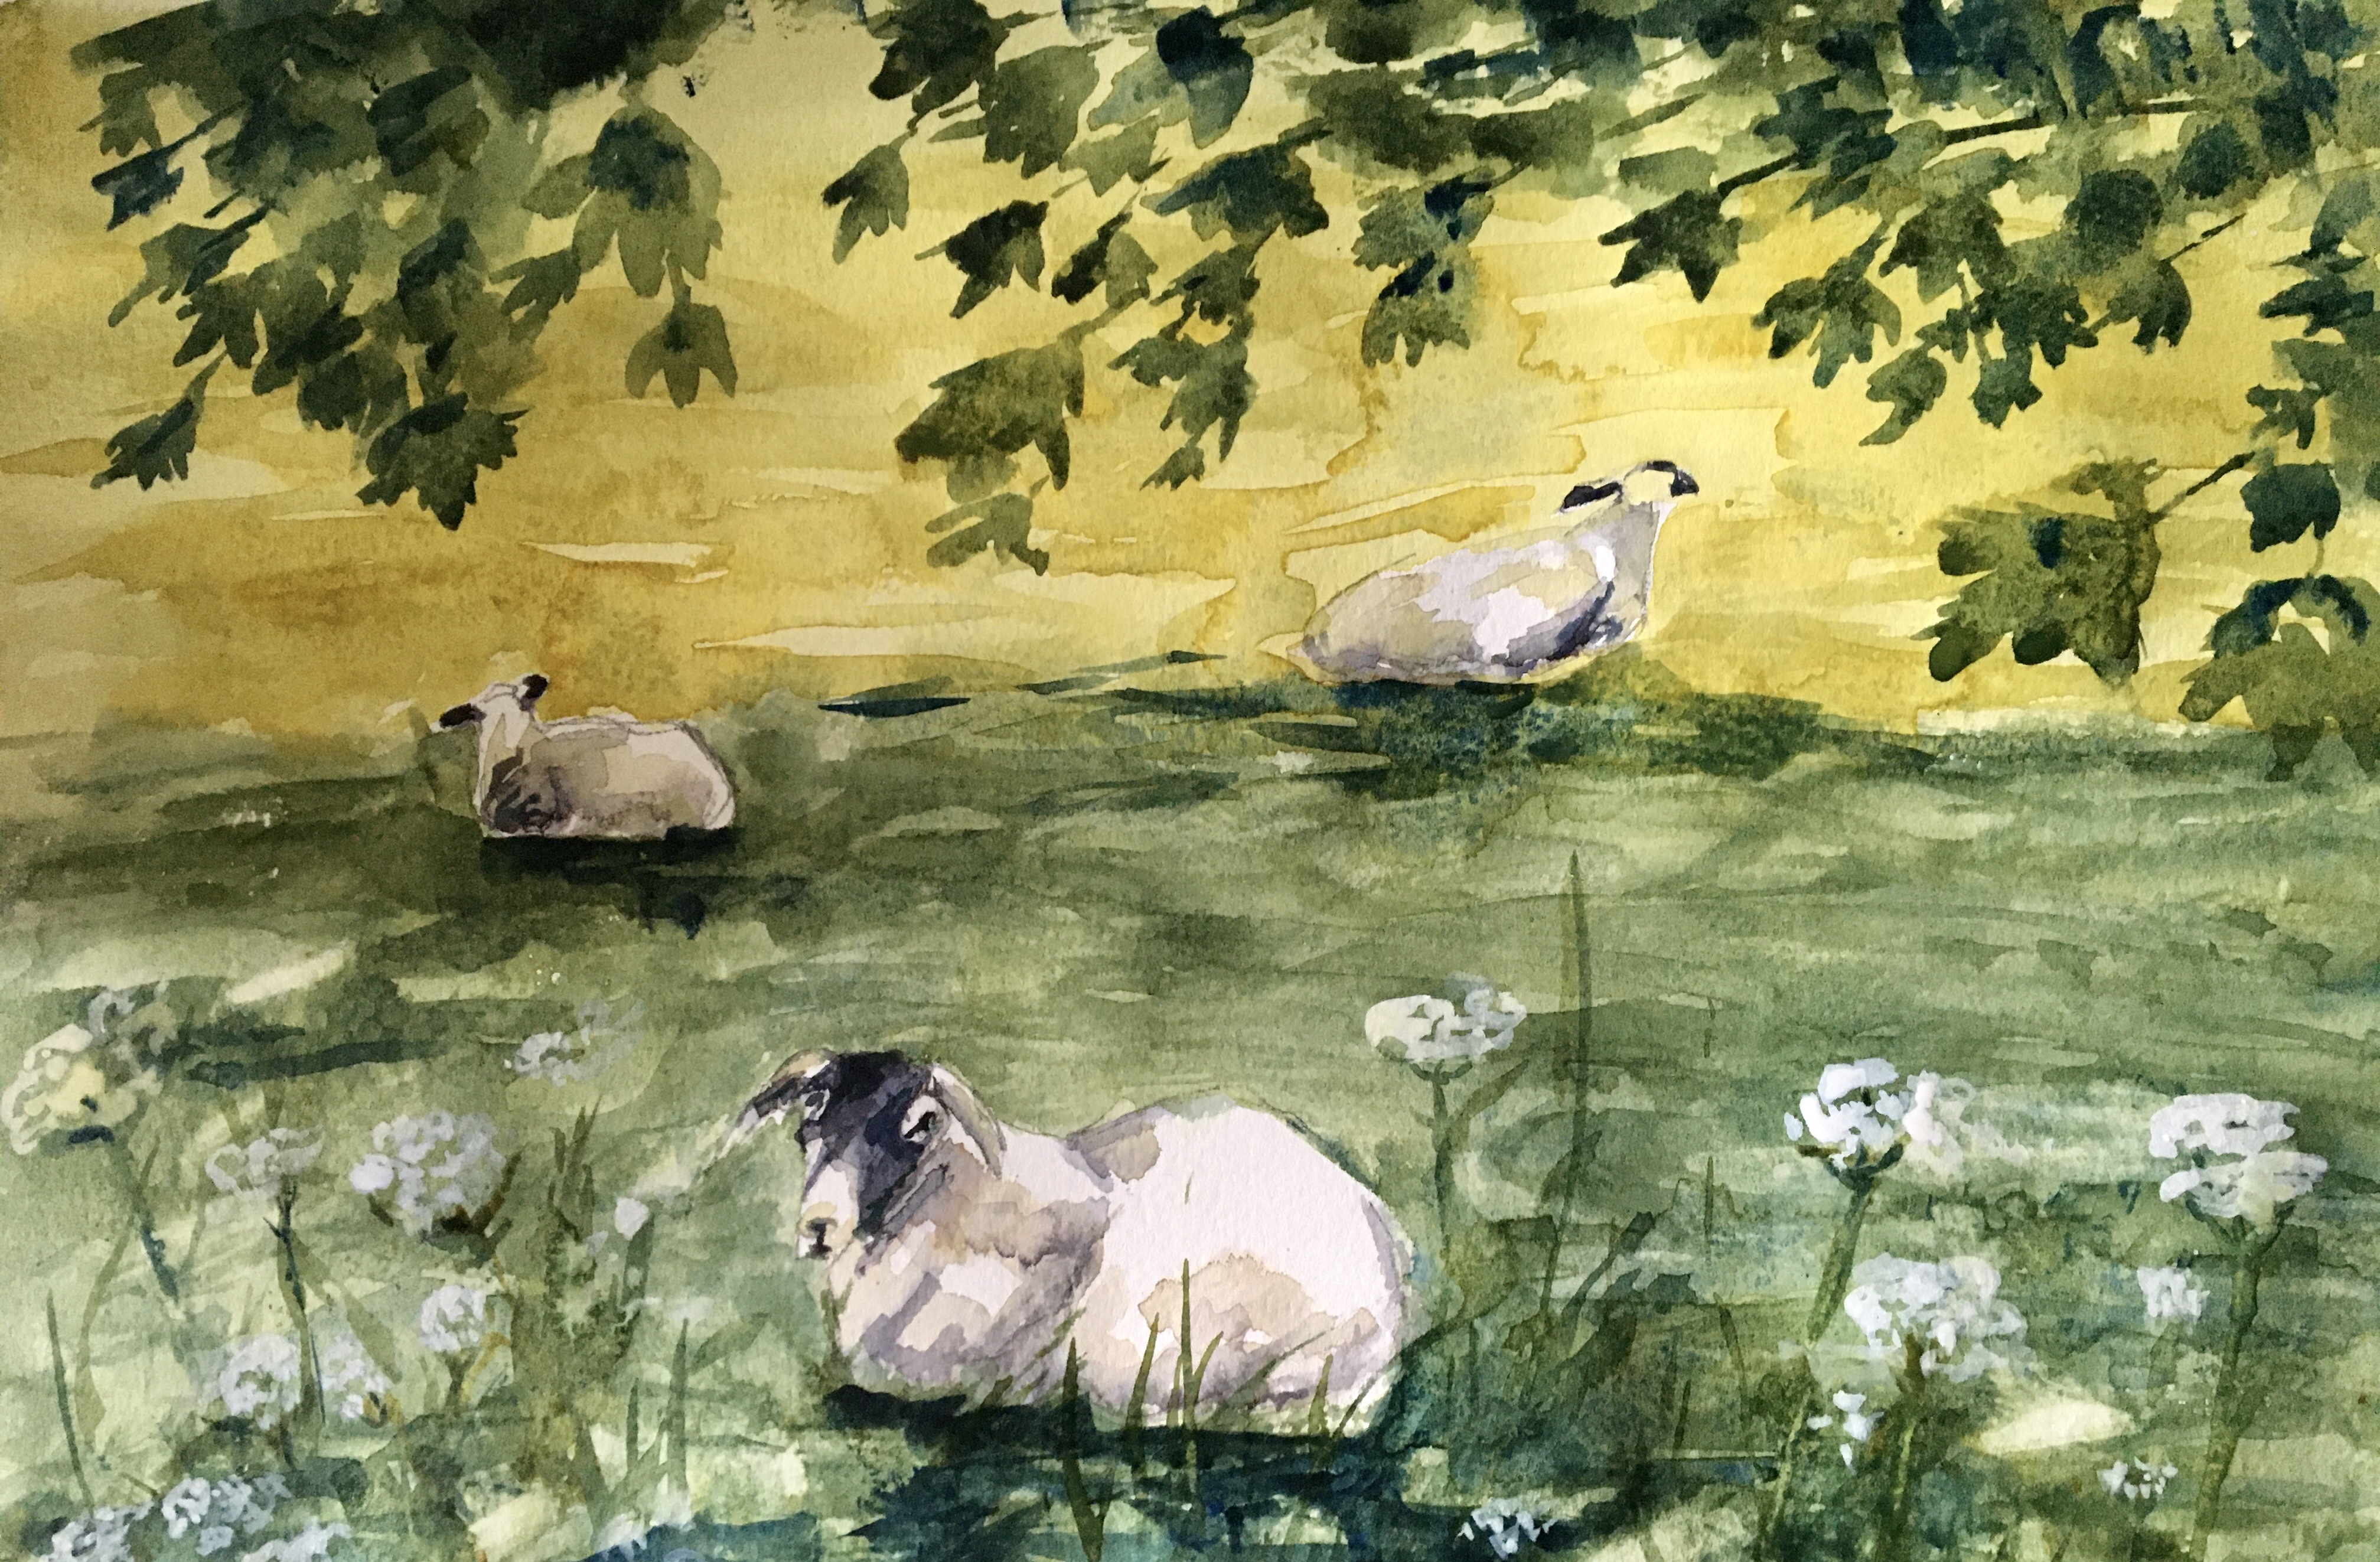 Watercolour of sheep under a tree yellow and green